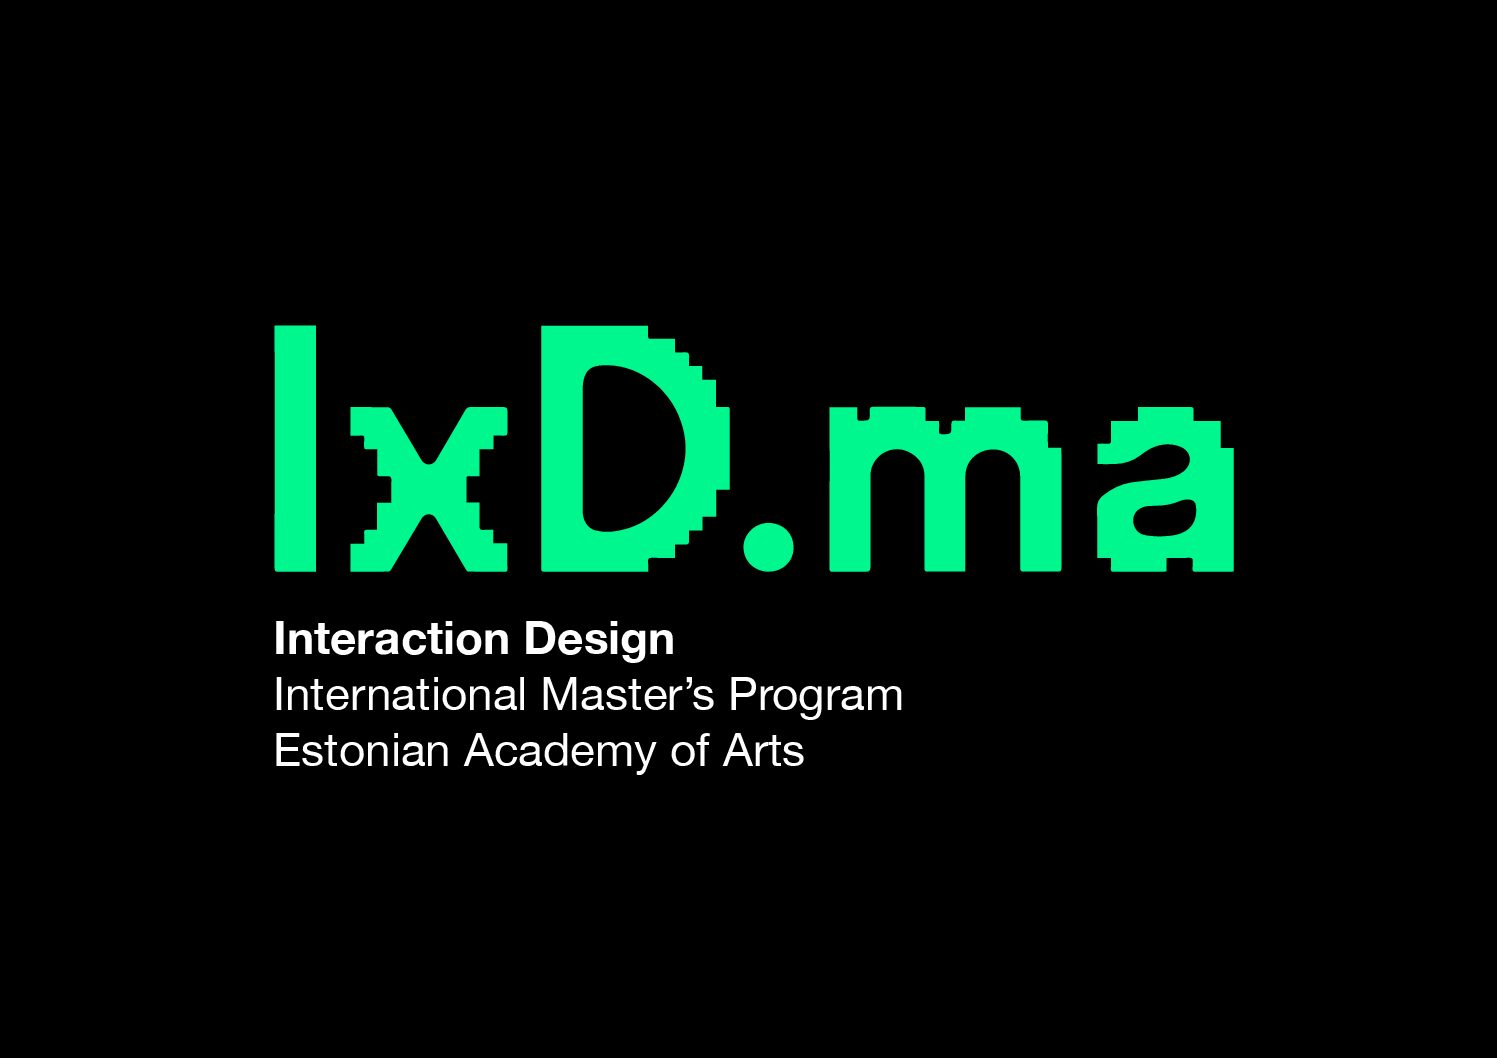 Kristjan Mändmaa – Interaction Design